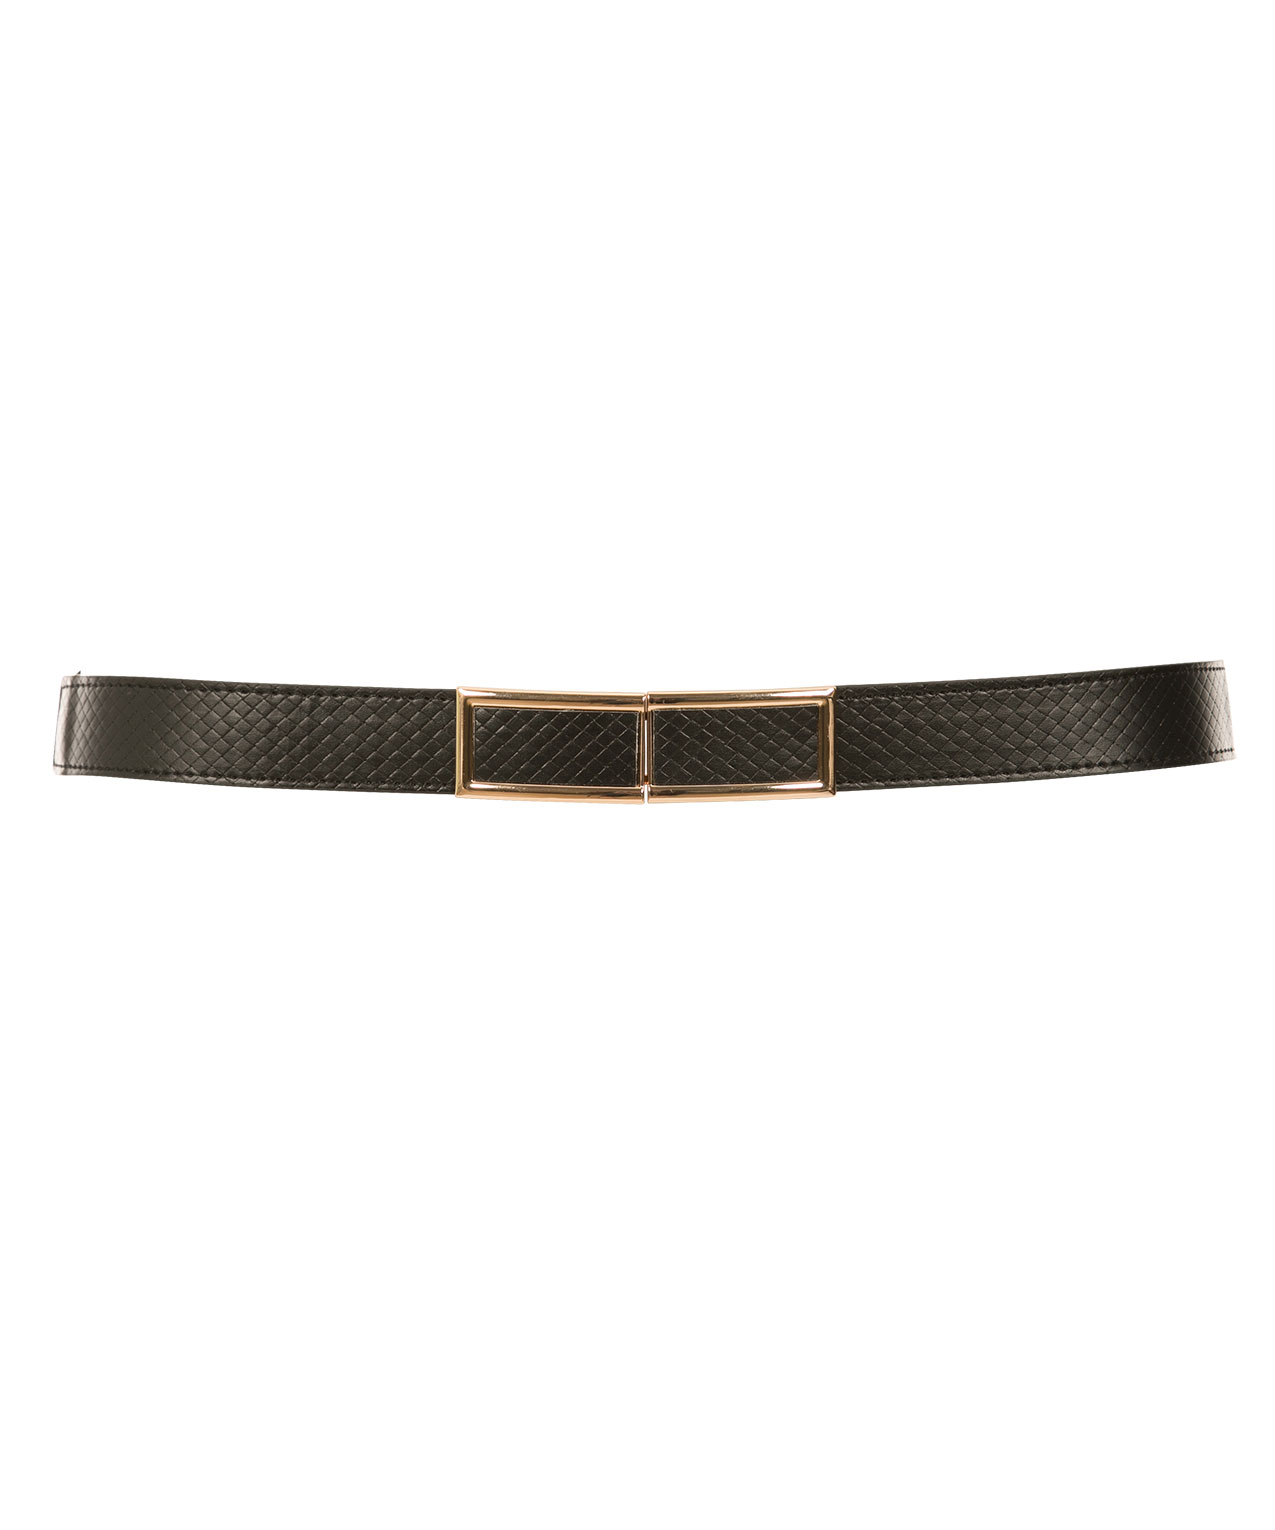 Find a great selection of women's skinny belts at dvlnpxiuf.ga Shop top brands like Tory Burch, Lauren Ralph Lauren & more. Totally free shipping & returns.